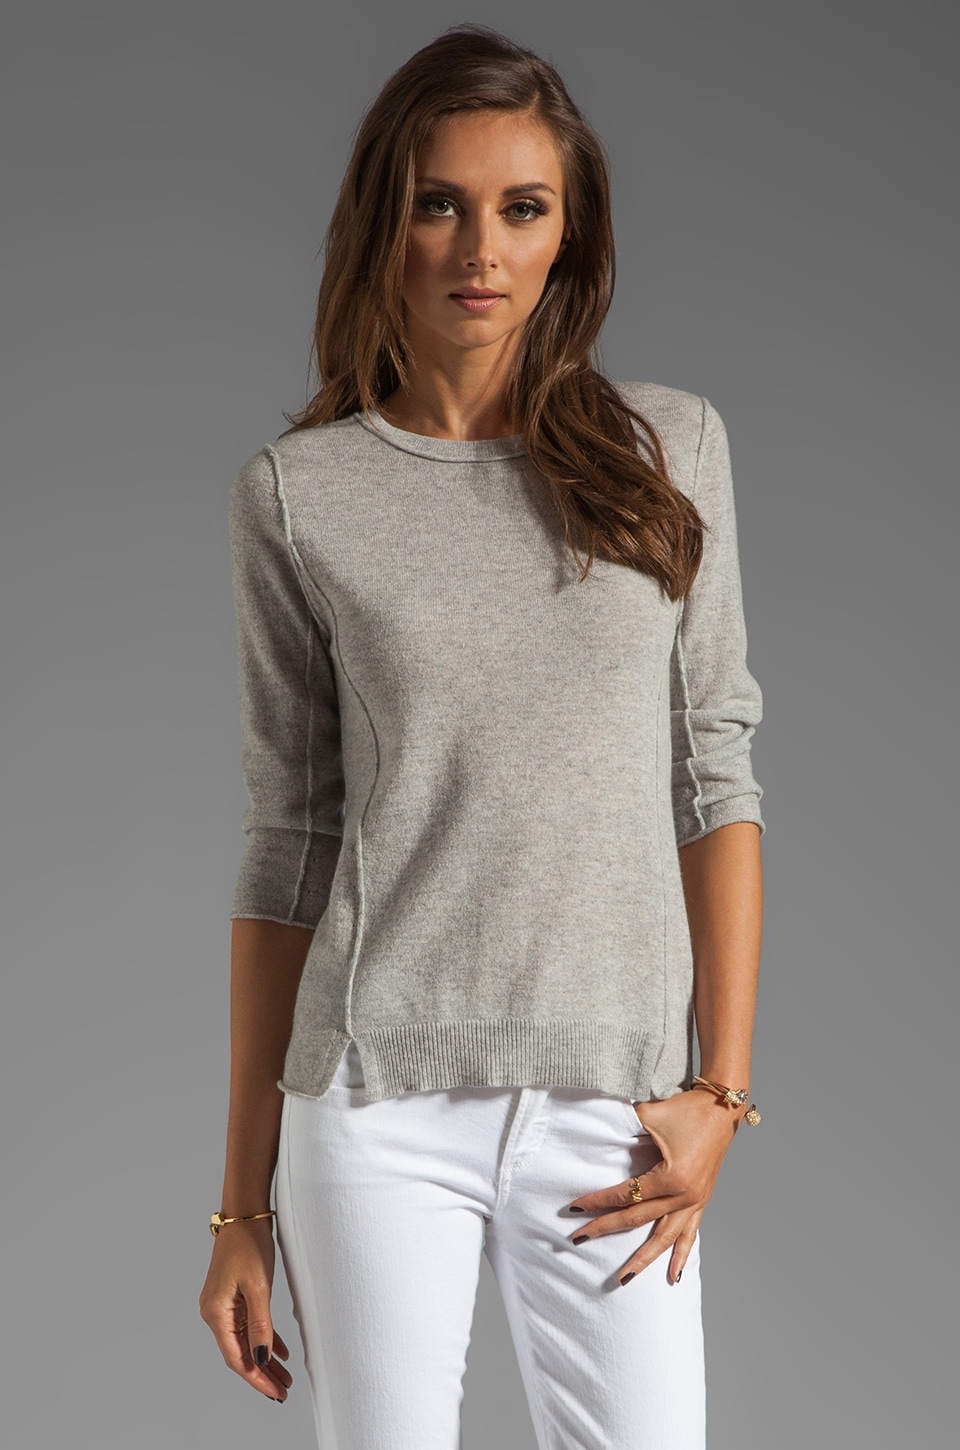 Autumn Cashmere Crew with Slash Detail Sweater in Fog